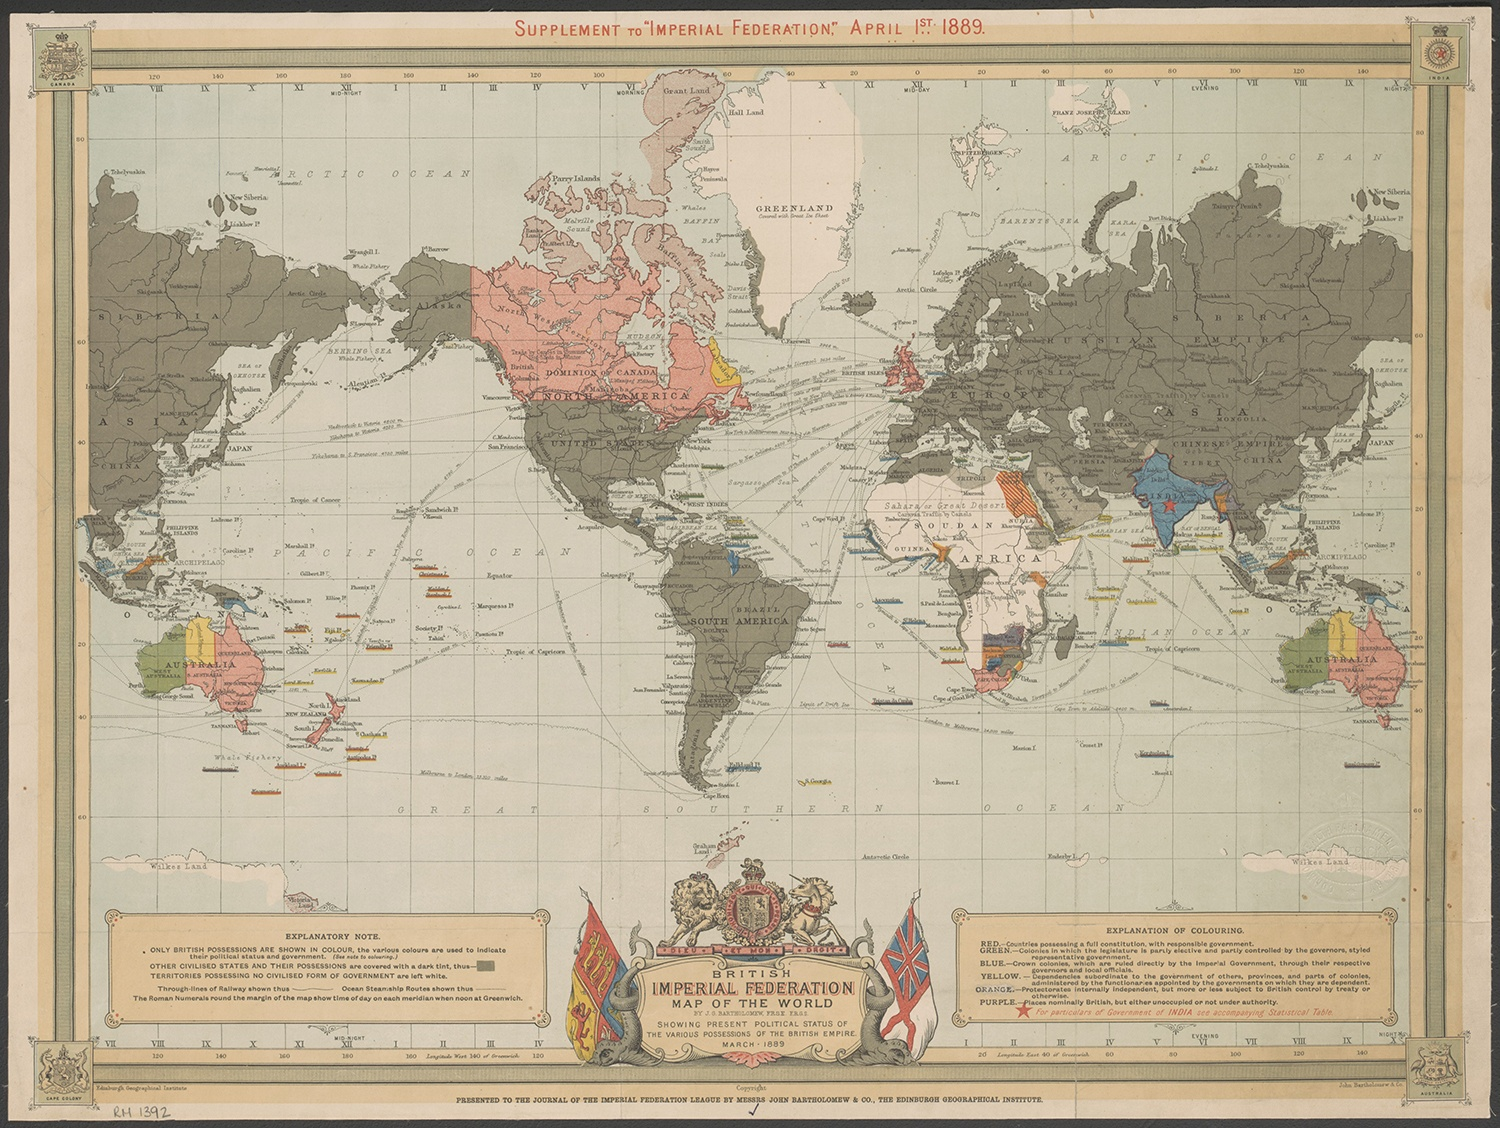 Map of the British Empire, 1889. Courtesy of Wikimedia Commons.